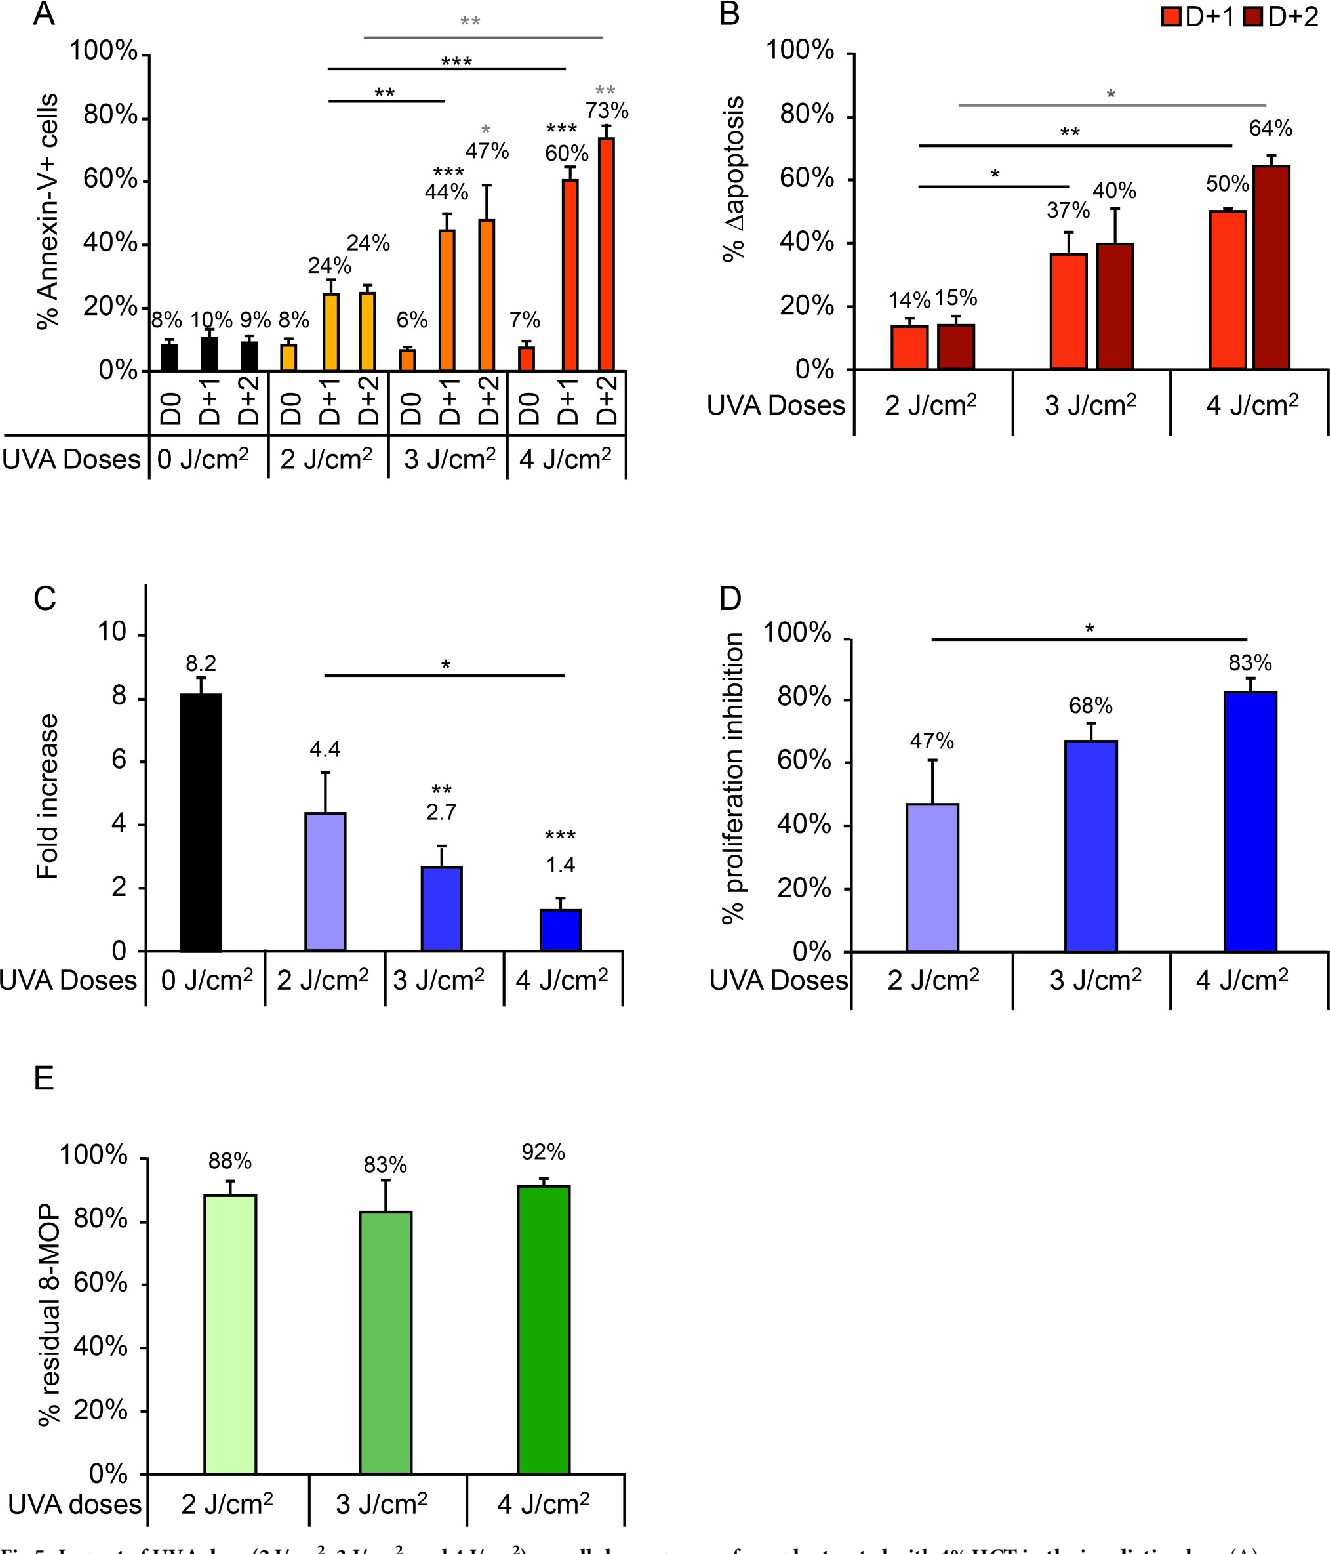 Fig 5. Impact of UVA dose (2 J/cm2, 3 J/cm2, and 4 J/cm2) on cellular response of samples treated with 4% HCT in the irradiation bag. (A) Percentage of Annexin-V+ cells measured daily up to 2 days after irradiation. (B) Δapoptosis determined on days 1 and 2 post-irradiation. (C) Fold increase on day 3 post-irradiation relative to day 0. (D) Proliferation inhibition percentage, calculated as the percentage decrease in proliferation in irradiated versus control samples. A pairwise comparison of each treatment condition was performed. For clarity, only statistically significant results are shown: �p<0.05; ��p<0.01; ���p<0.001. Significant differences with respect to the control (UVA -) are indicated with an asterisk above the relevant bar, while comparisons between irradiated samples are indicated with an asterisk over a line linking the relevant bars. For Annexin-V+ cells (A) and Δapoptosis (B), comparisons performed on days 1 and 2 post-irradiation are indicated in black and gray, respectively.